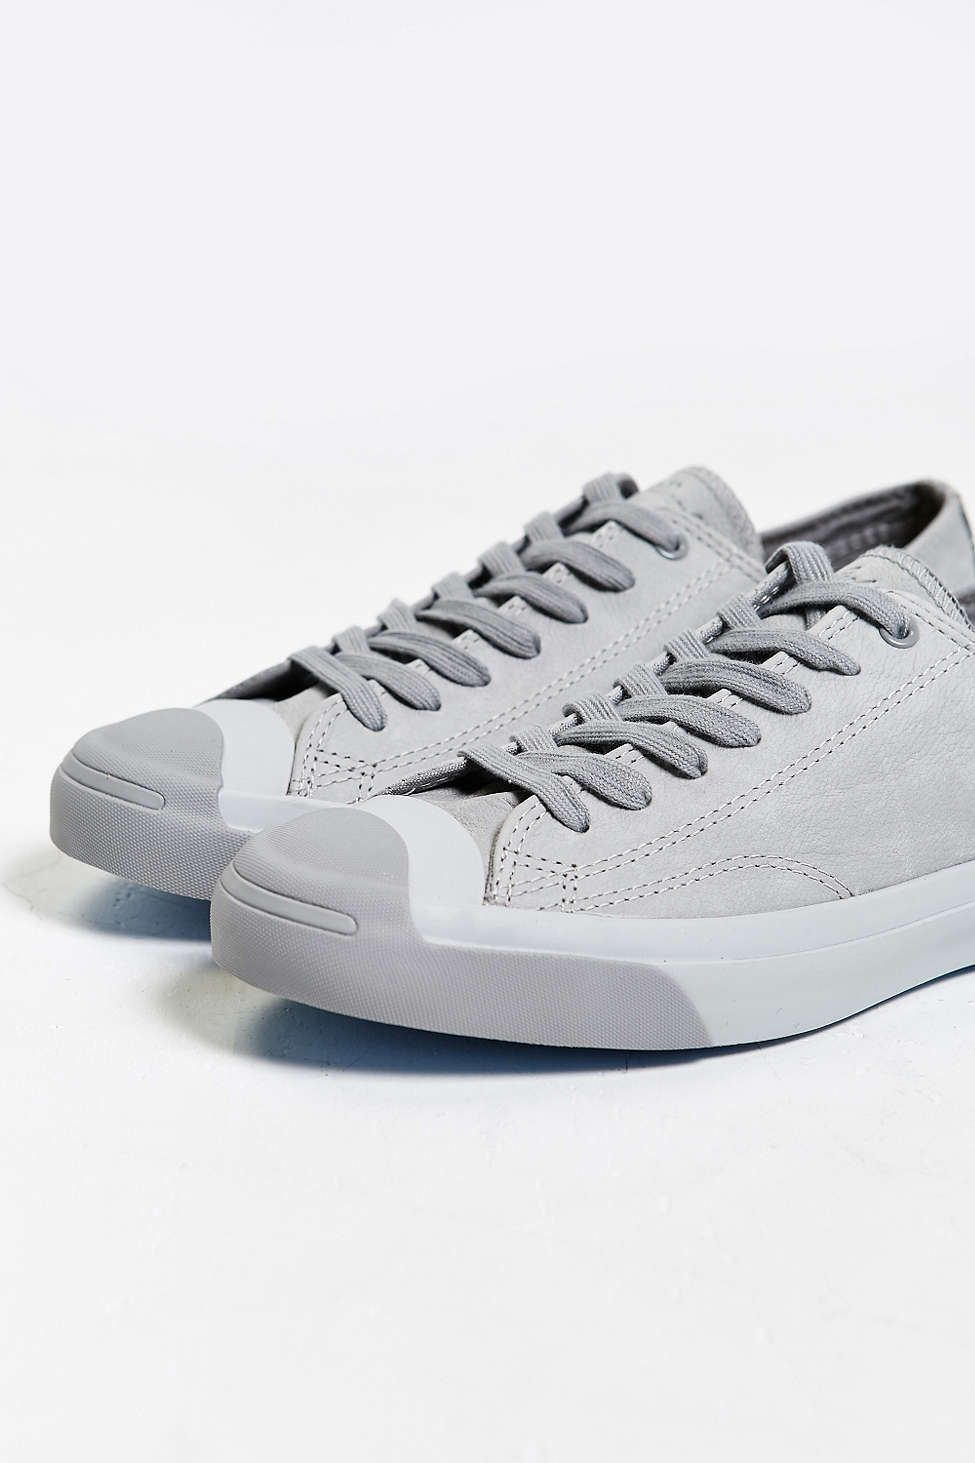 8e9421b2125 Converse Jack Purcell Nubuck Low  Grey